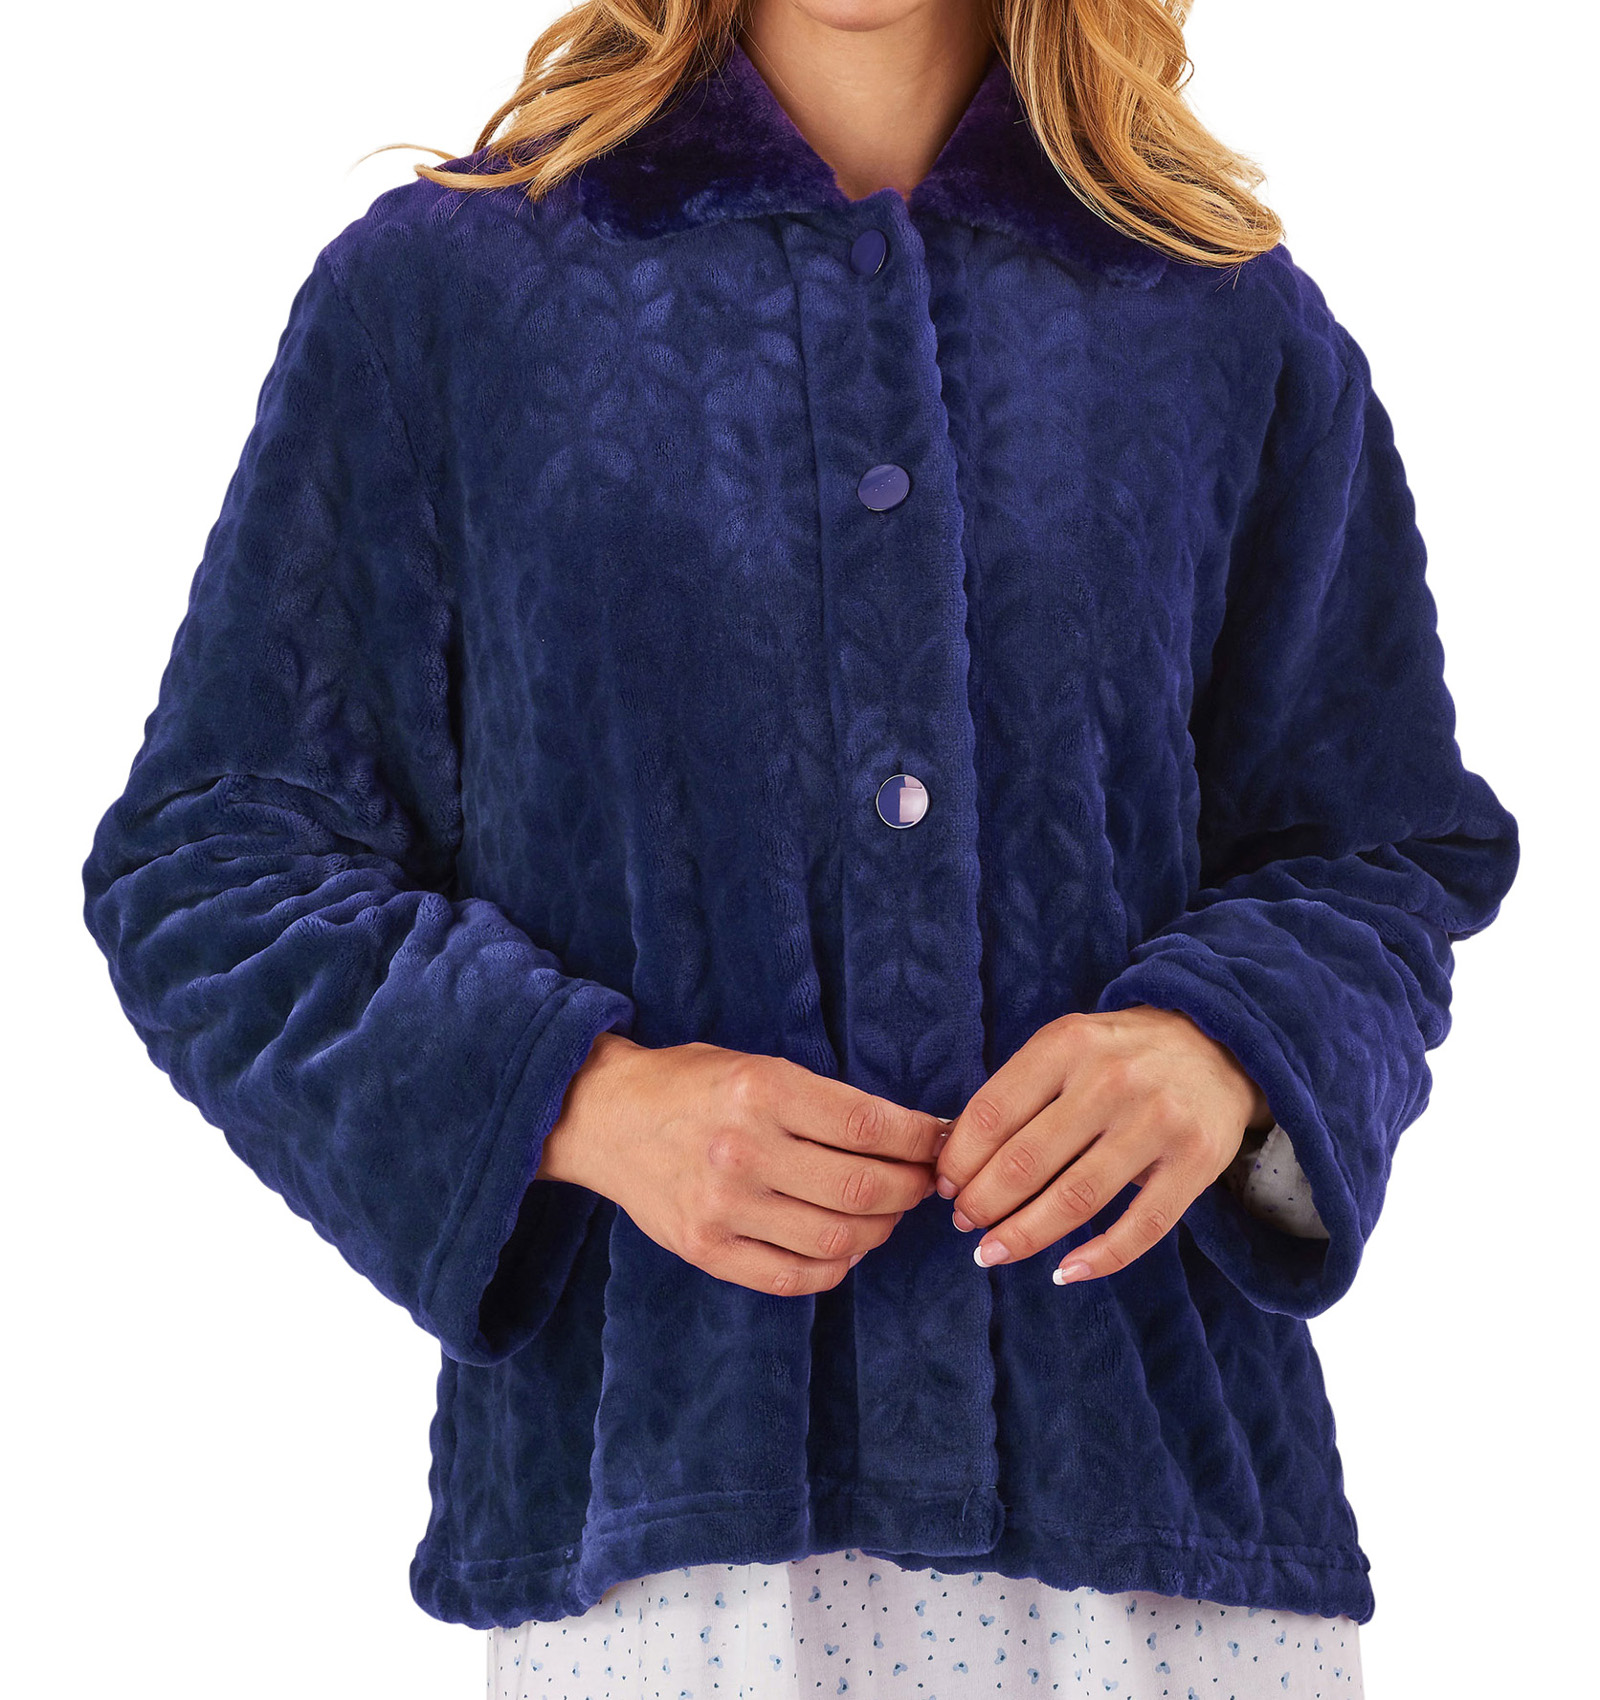 Bed Jacket Slenderella Womens Button Up Super Soft Faux ...